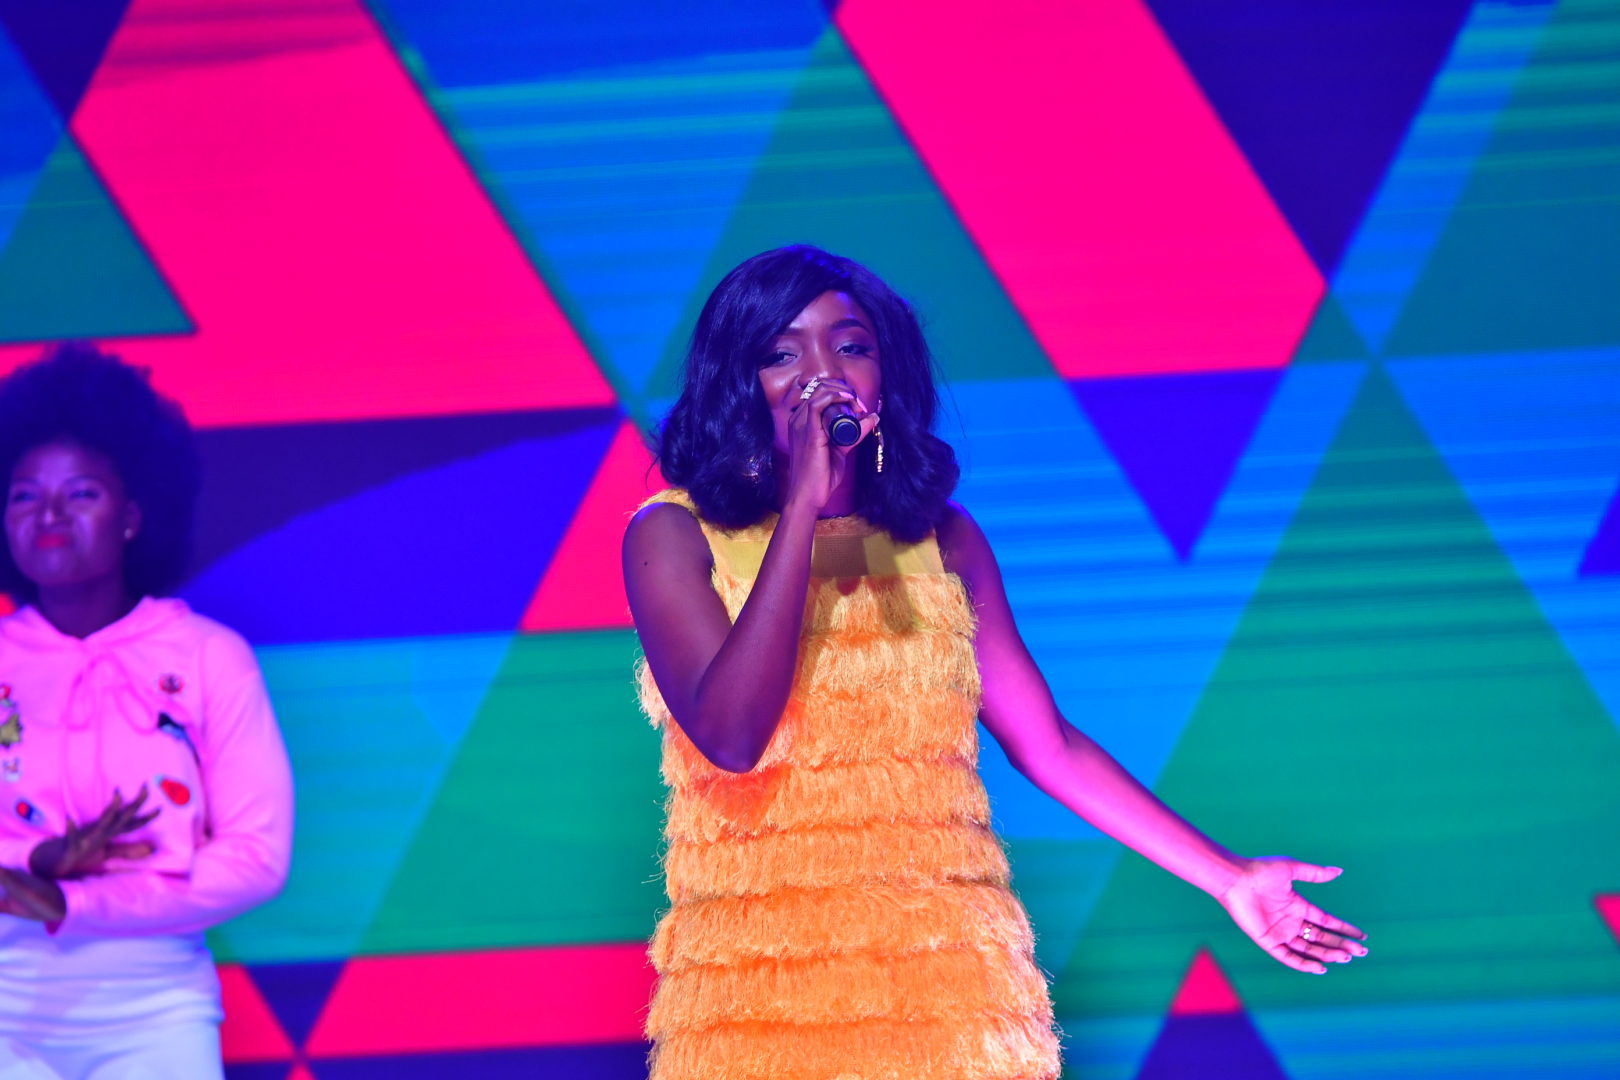 Wande Coal performed at the over 2, 000 capacity Indigo at the O2 Arena, while Simi took to the 800 capacity O2 Academy.